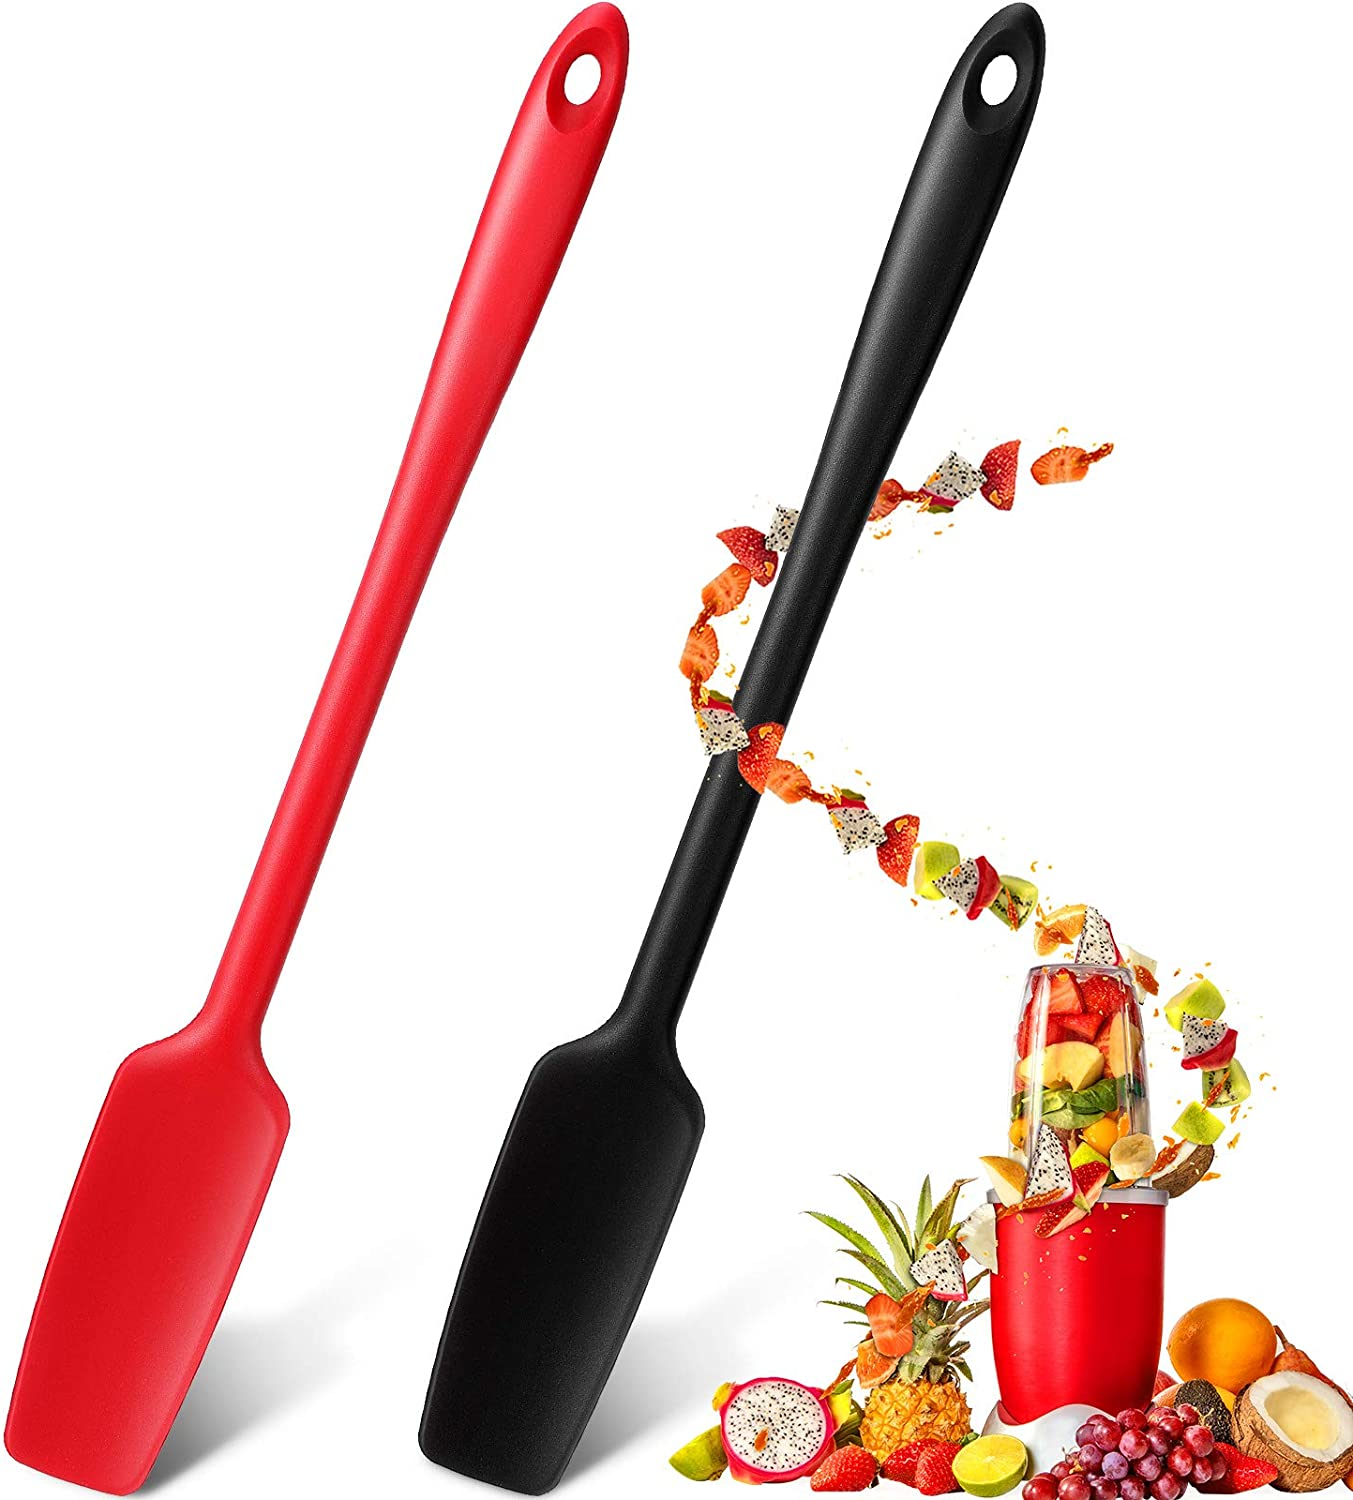 Long Handle Silicone Jar Spatula Kitchen Scraper Spatula Non-Stick Rubber Scraper Silicone Scraper for Jars, Smoothies, Blenders Cooking Baking Stirring Mixing (2, Red, Black)